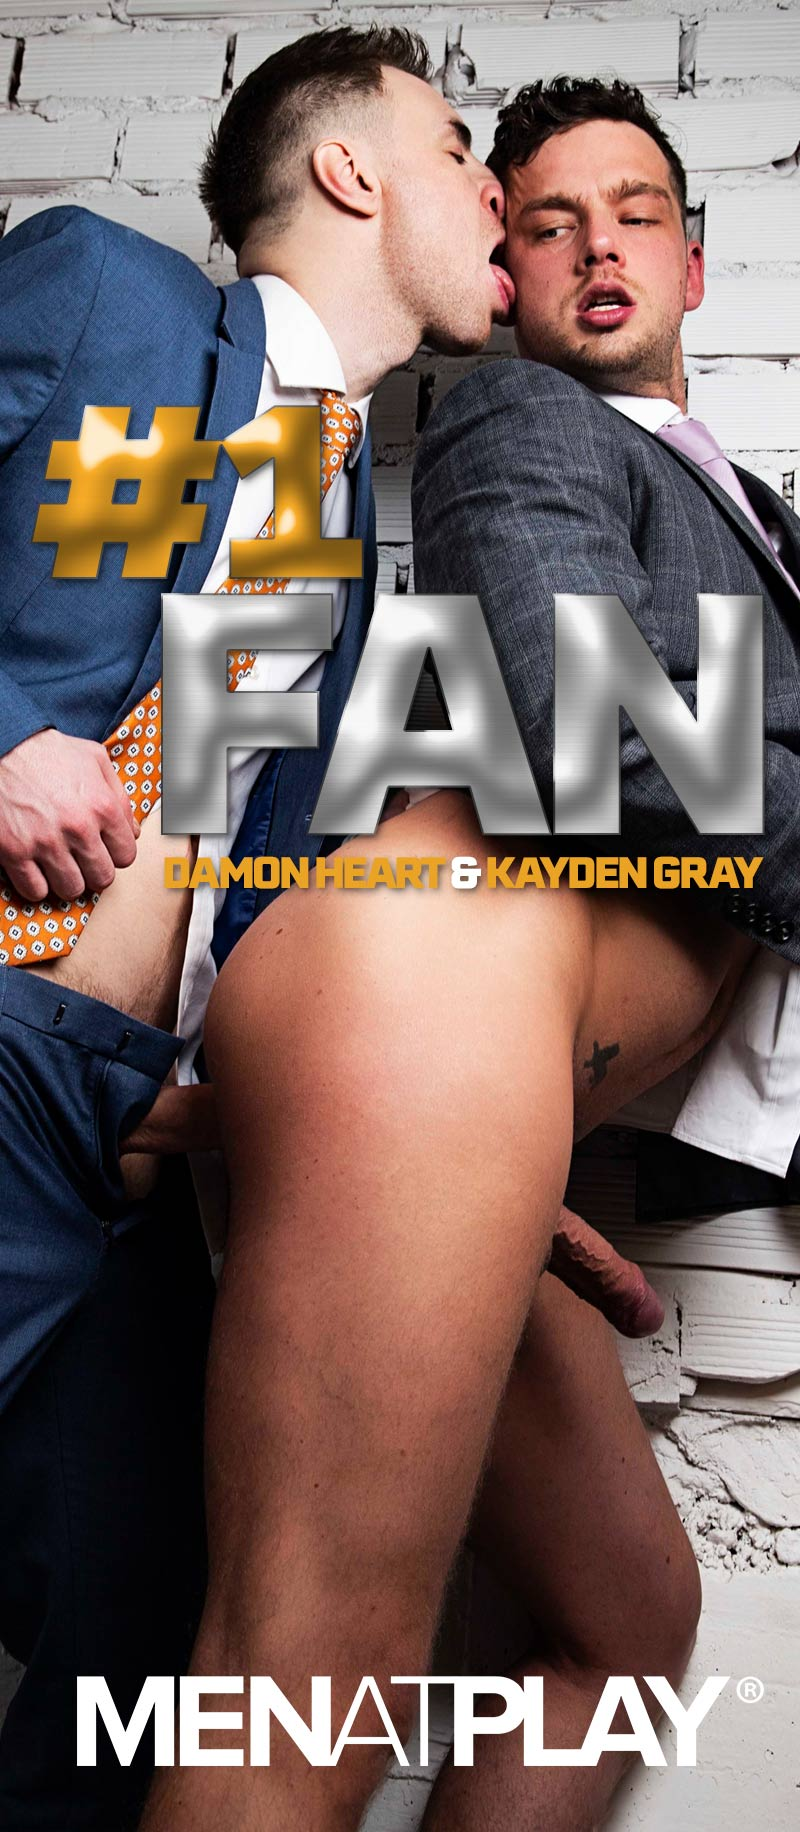 #1 FAN (Kayden Gray Fucks Damon Heart) on MenAtPlay